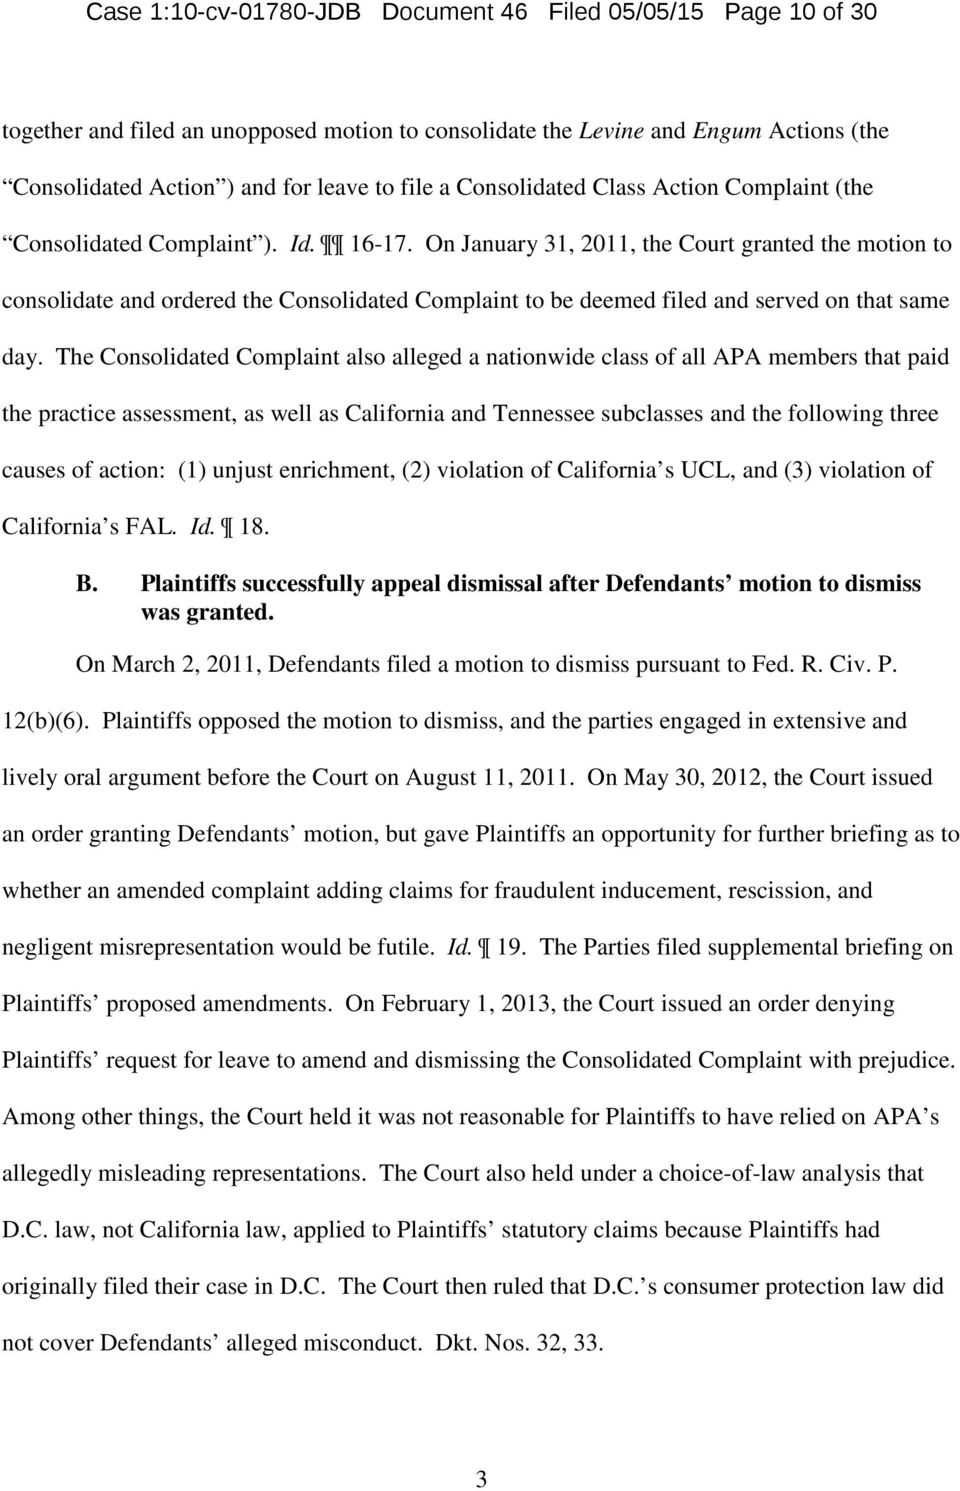 Case 1:10-cv JDB Document 46 Filed 05/05/15 Page 1 of 30